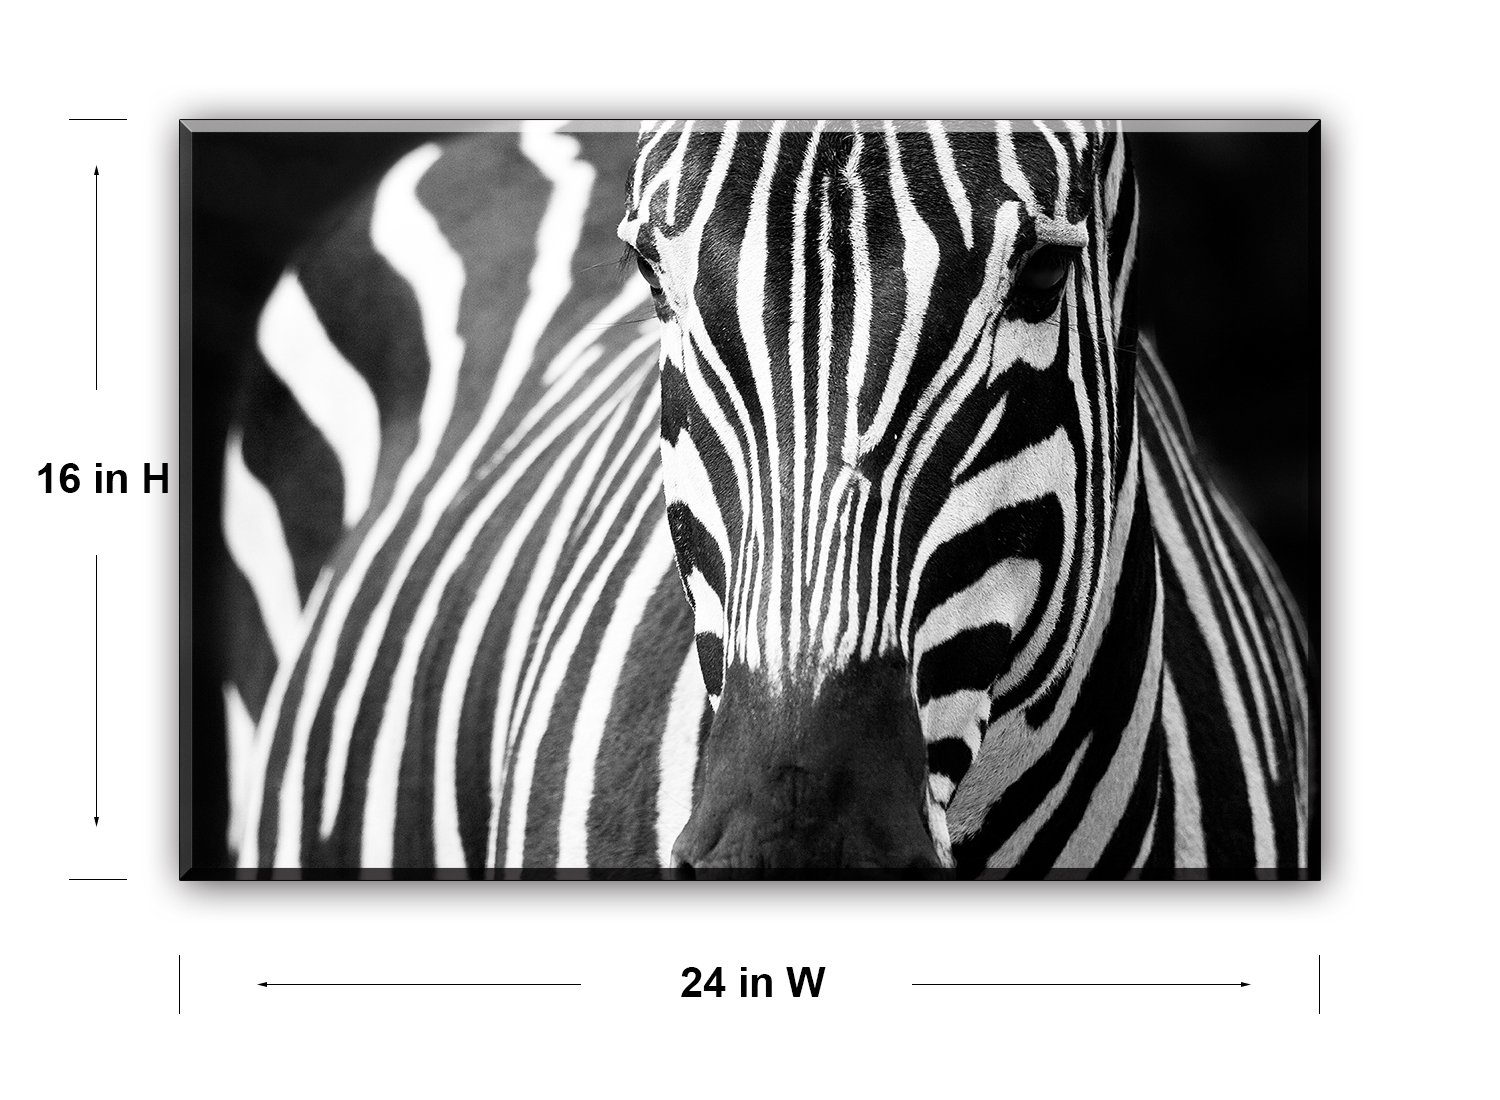 Zebra wall art decor for bedroom piy african animals picture canvas prints black and white painting decorations 1 thick frame waterproof artwork